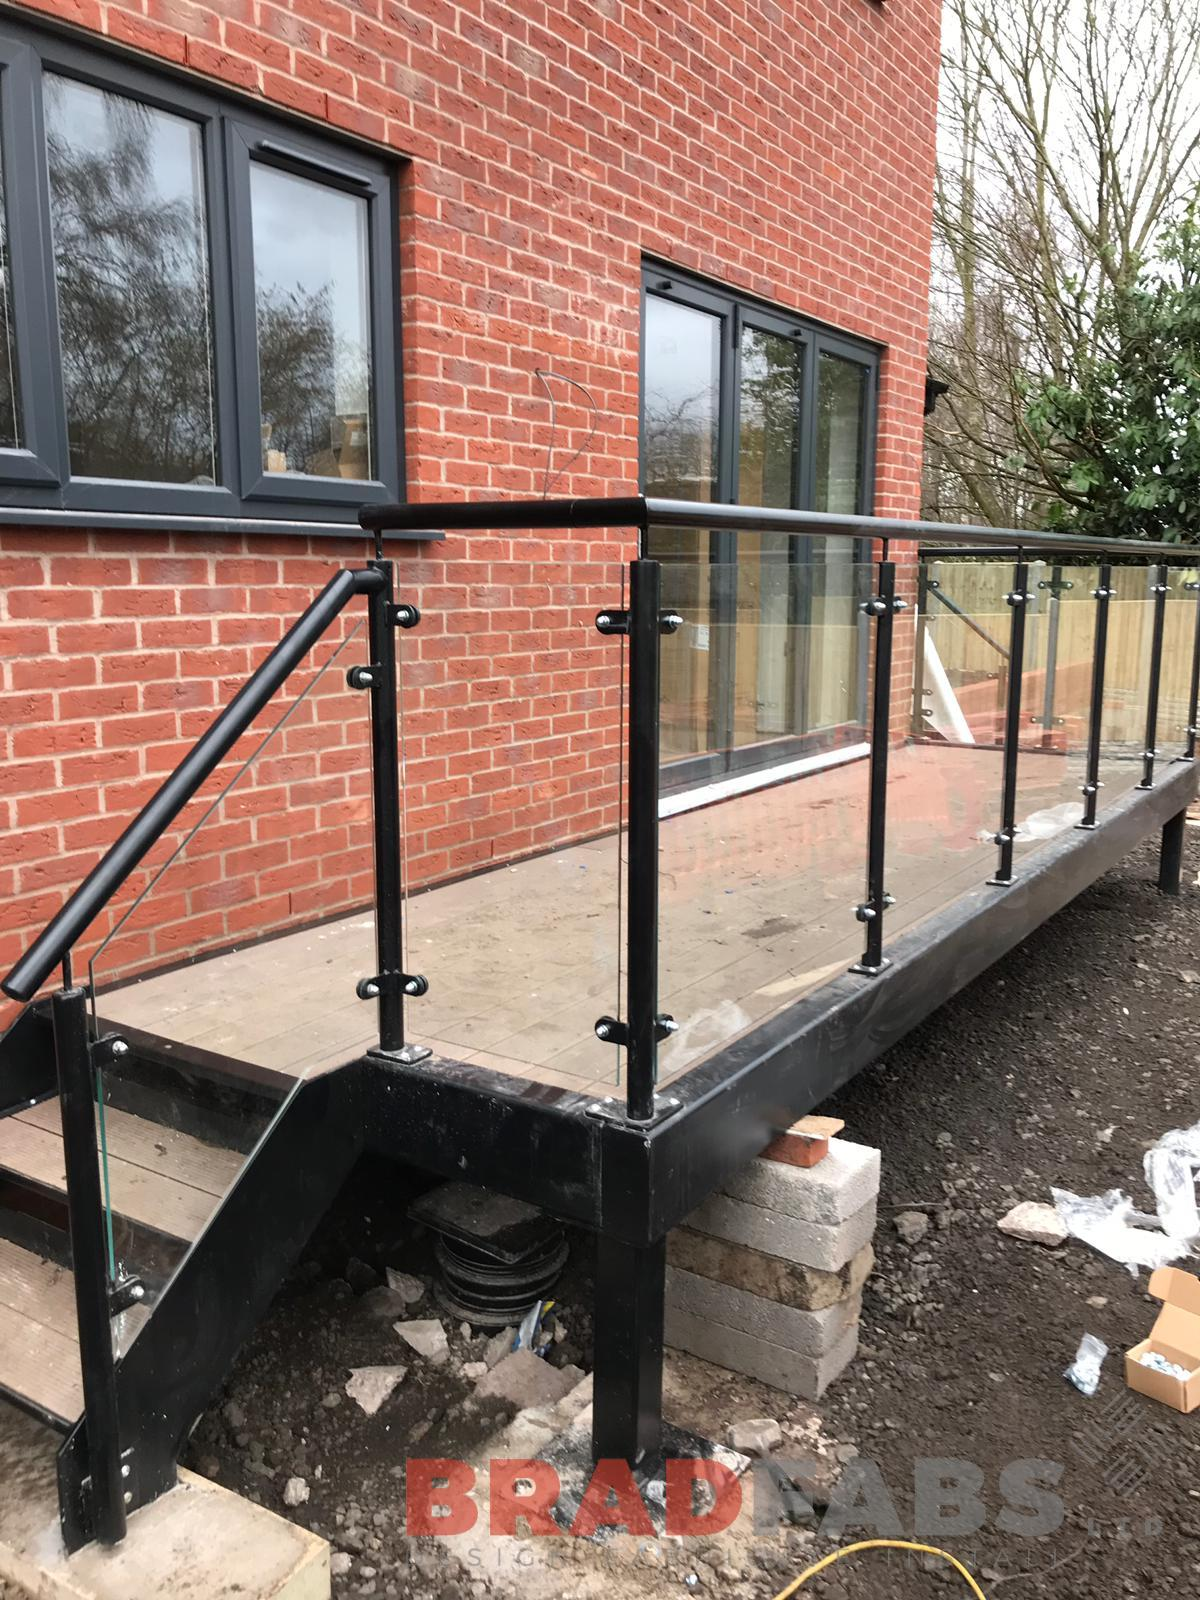 Steel Balcony with powder coated balustrade and staircase fabricated by Bradfabs, UK manufacturers